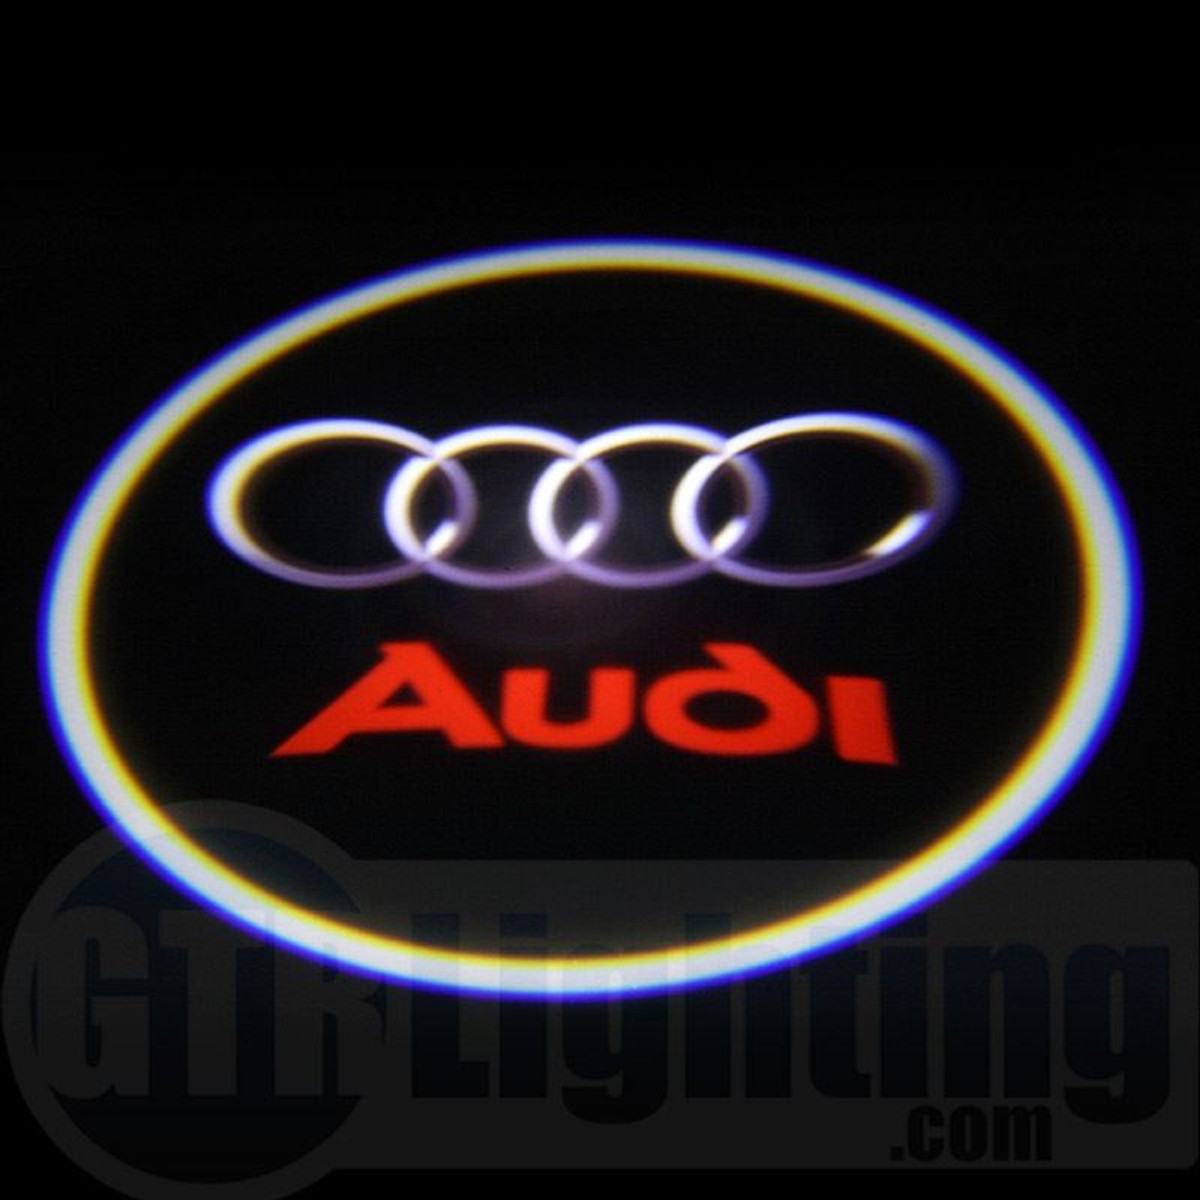 gtr lighting led logo projectors audi logo 41. Black Bedroom Furniture Sets. Home Design Ideas